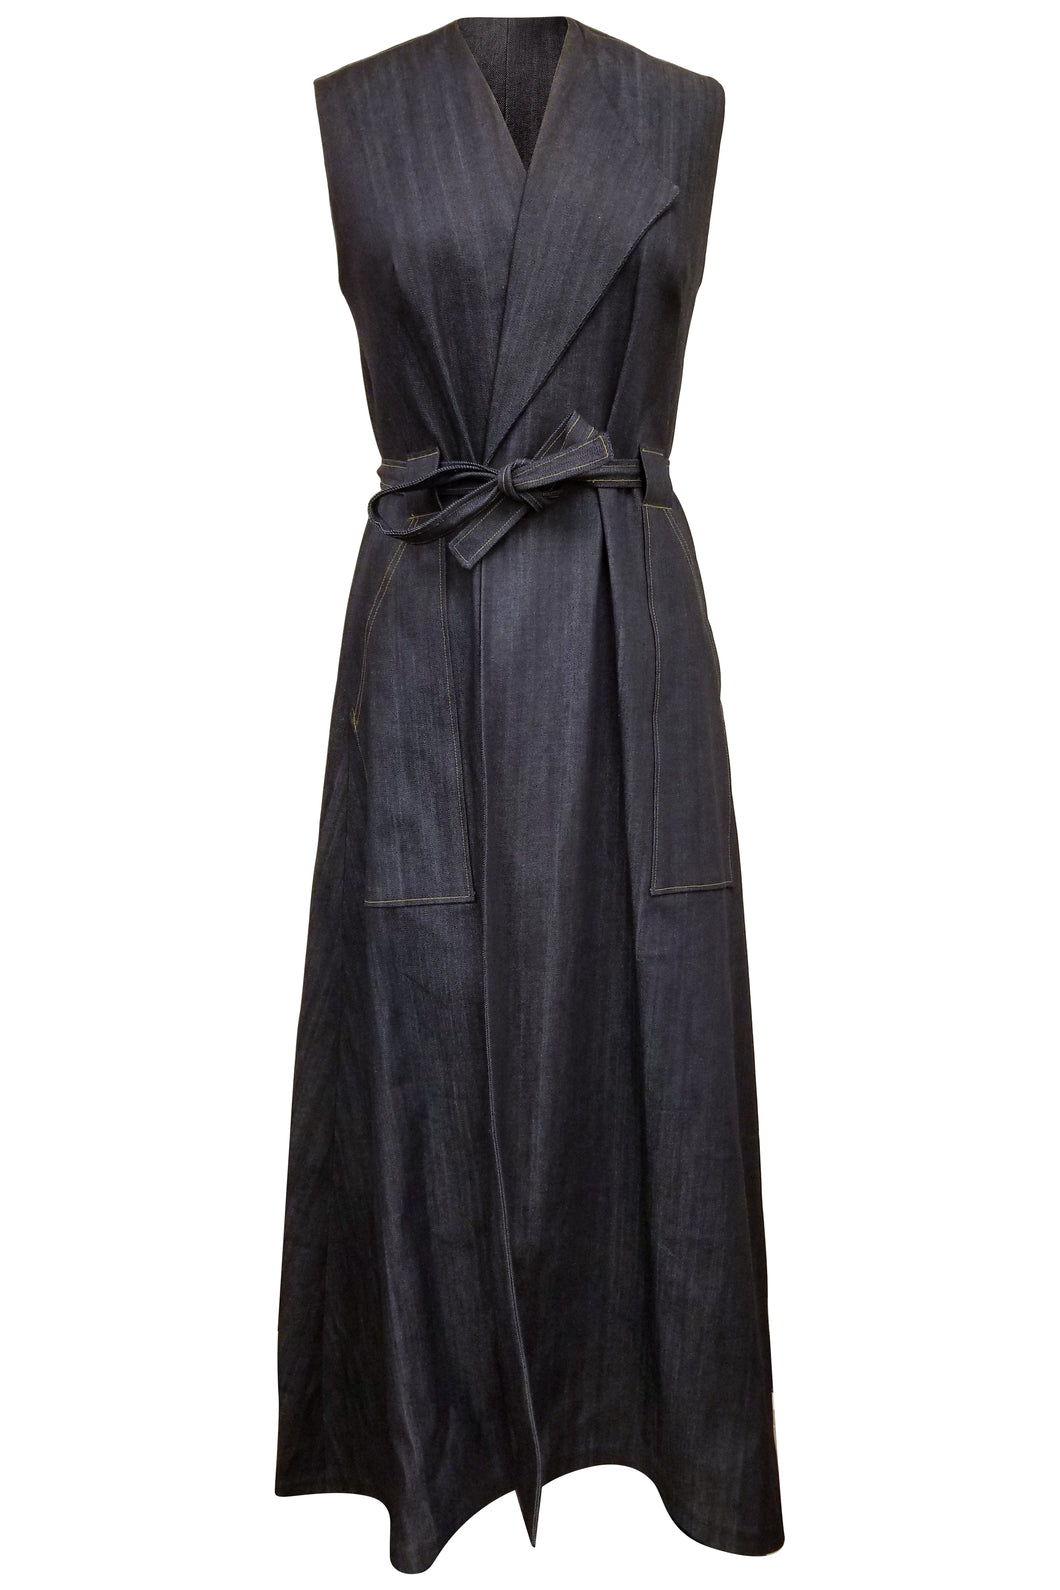 Flow by Tara Davis Denim Long Duster/Wrap Dress